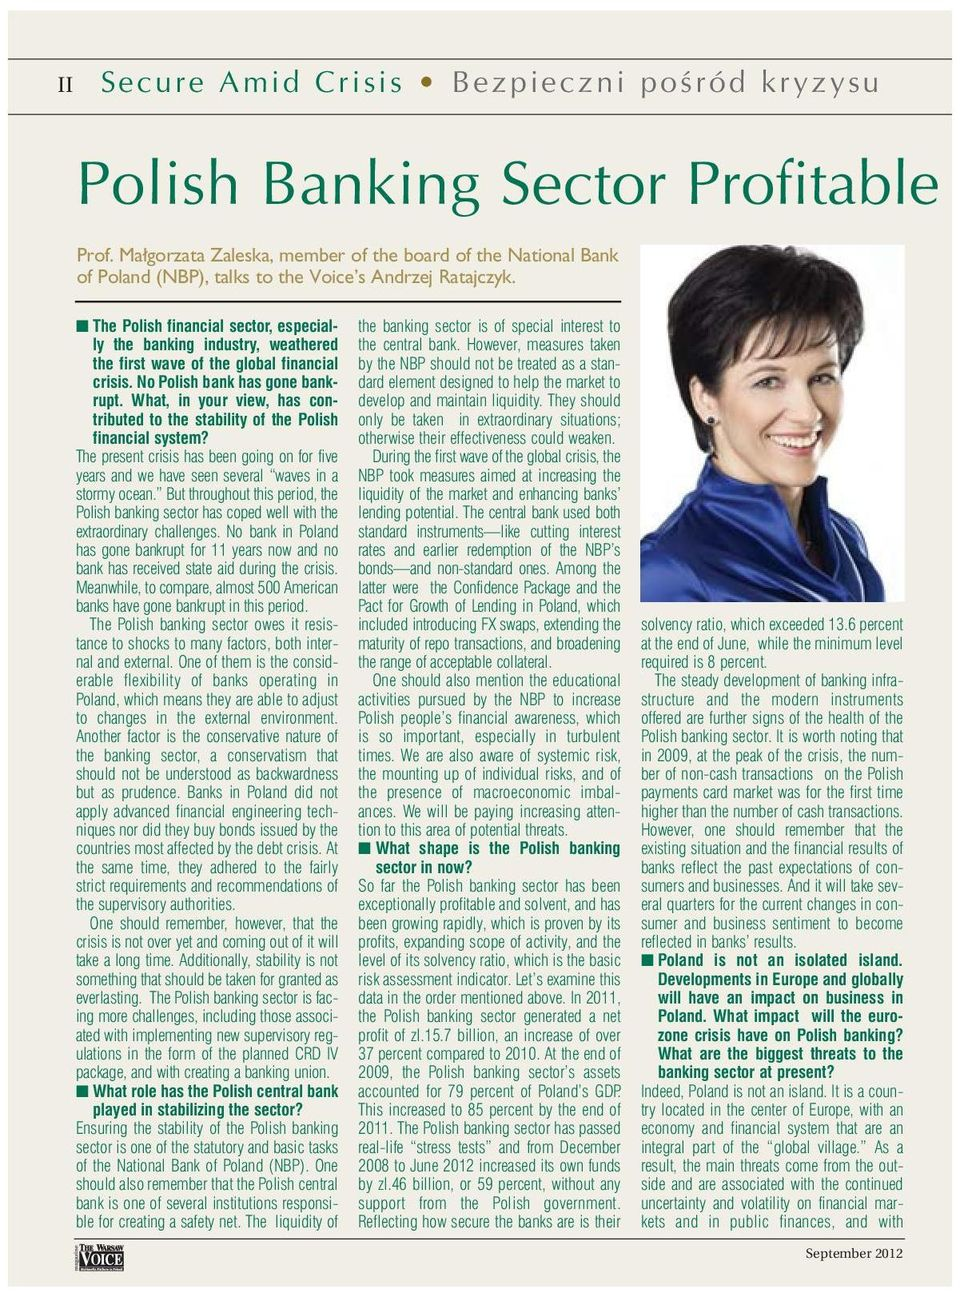 The Polish financial sector, especially the banking industry, weathered the first wave of the global financial crisis. No Polish bank has gone bankrupt.